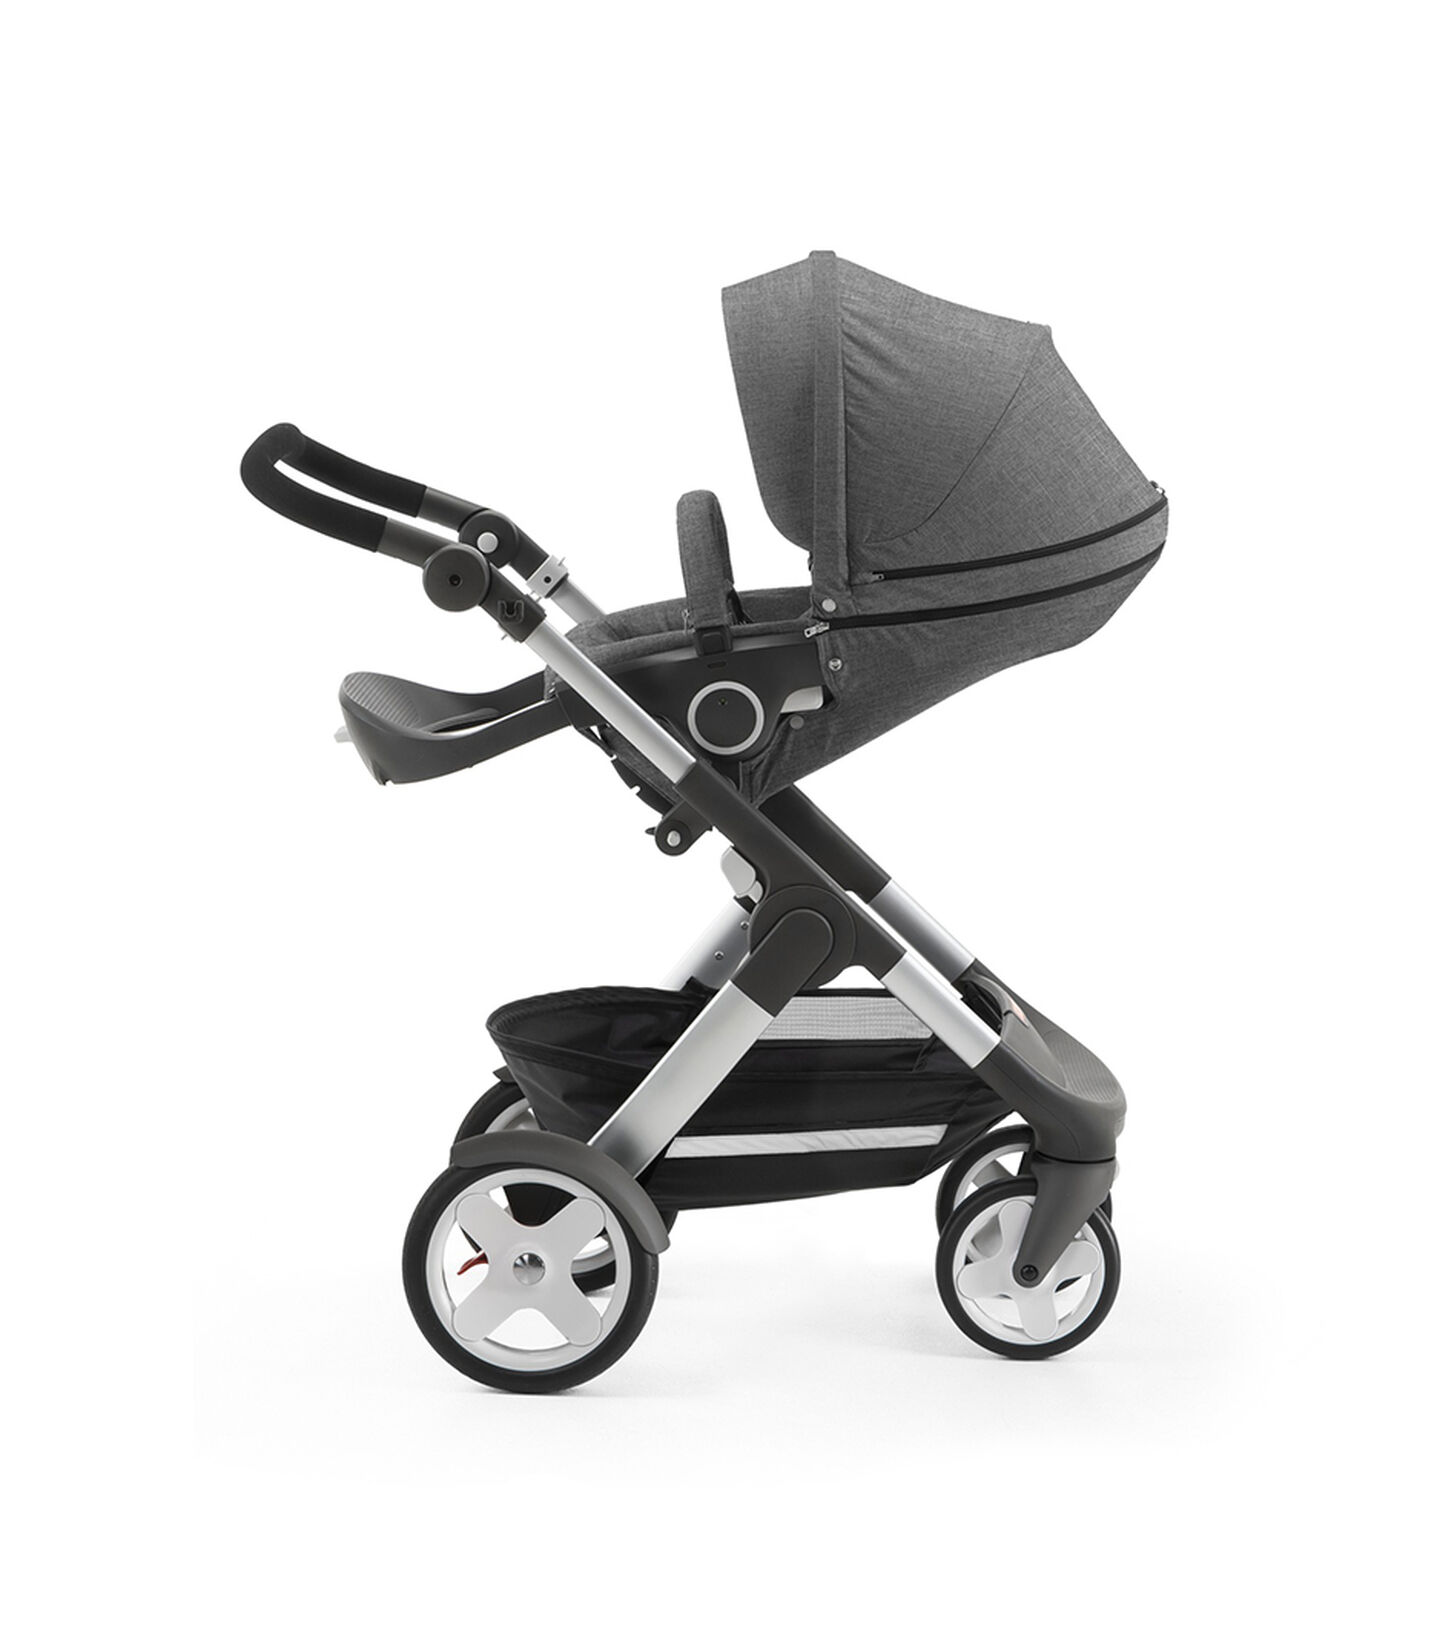 Stokke® Trailz with Stokke® Stroller Seat, parent facing, rest position. Black Melange.